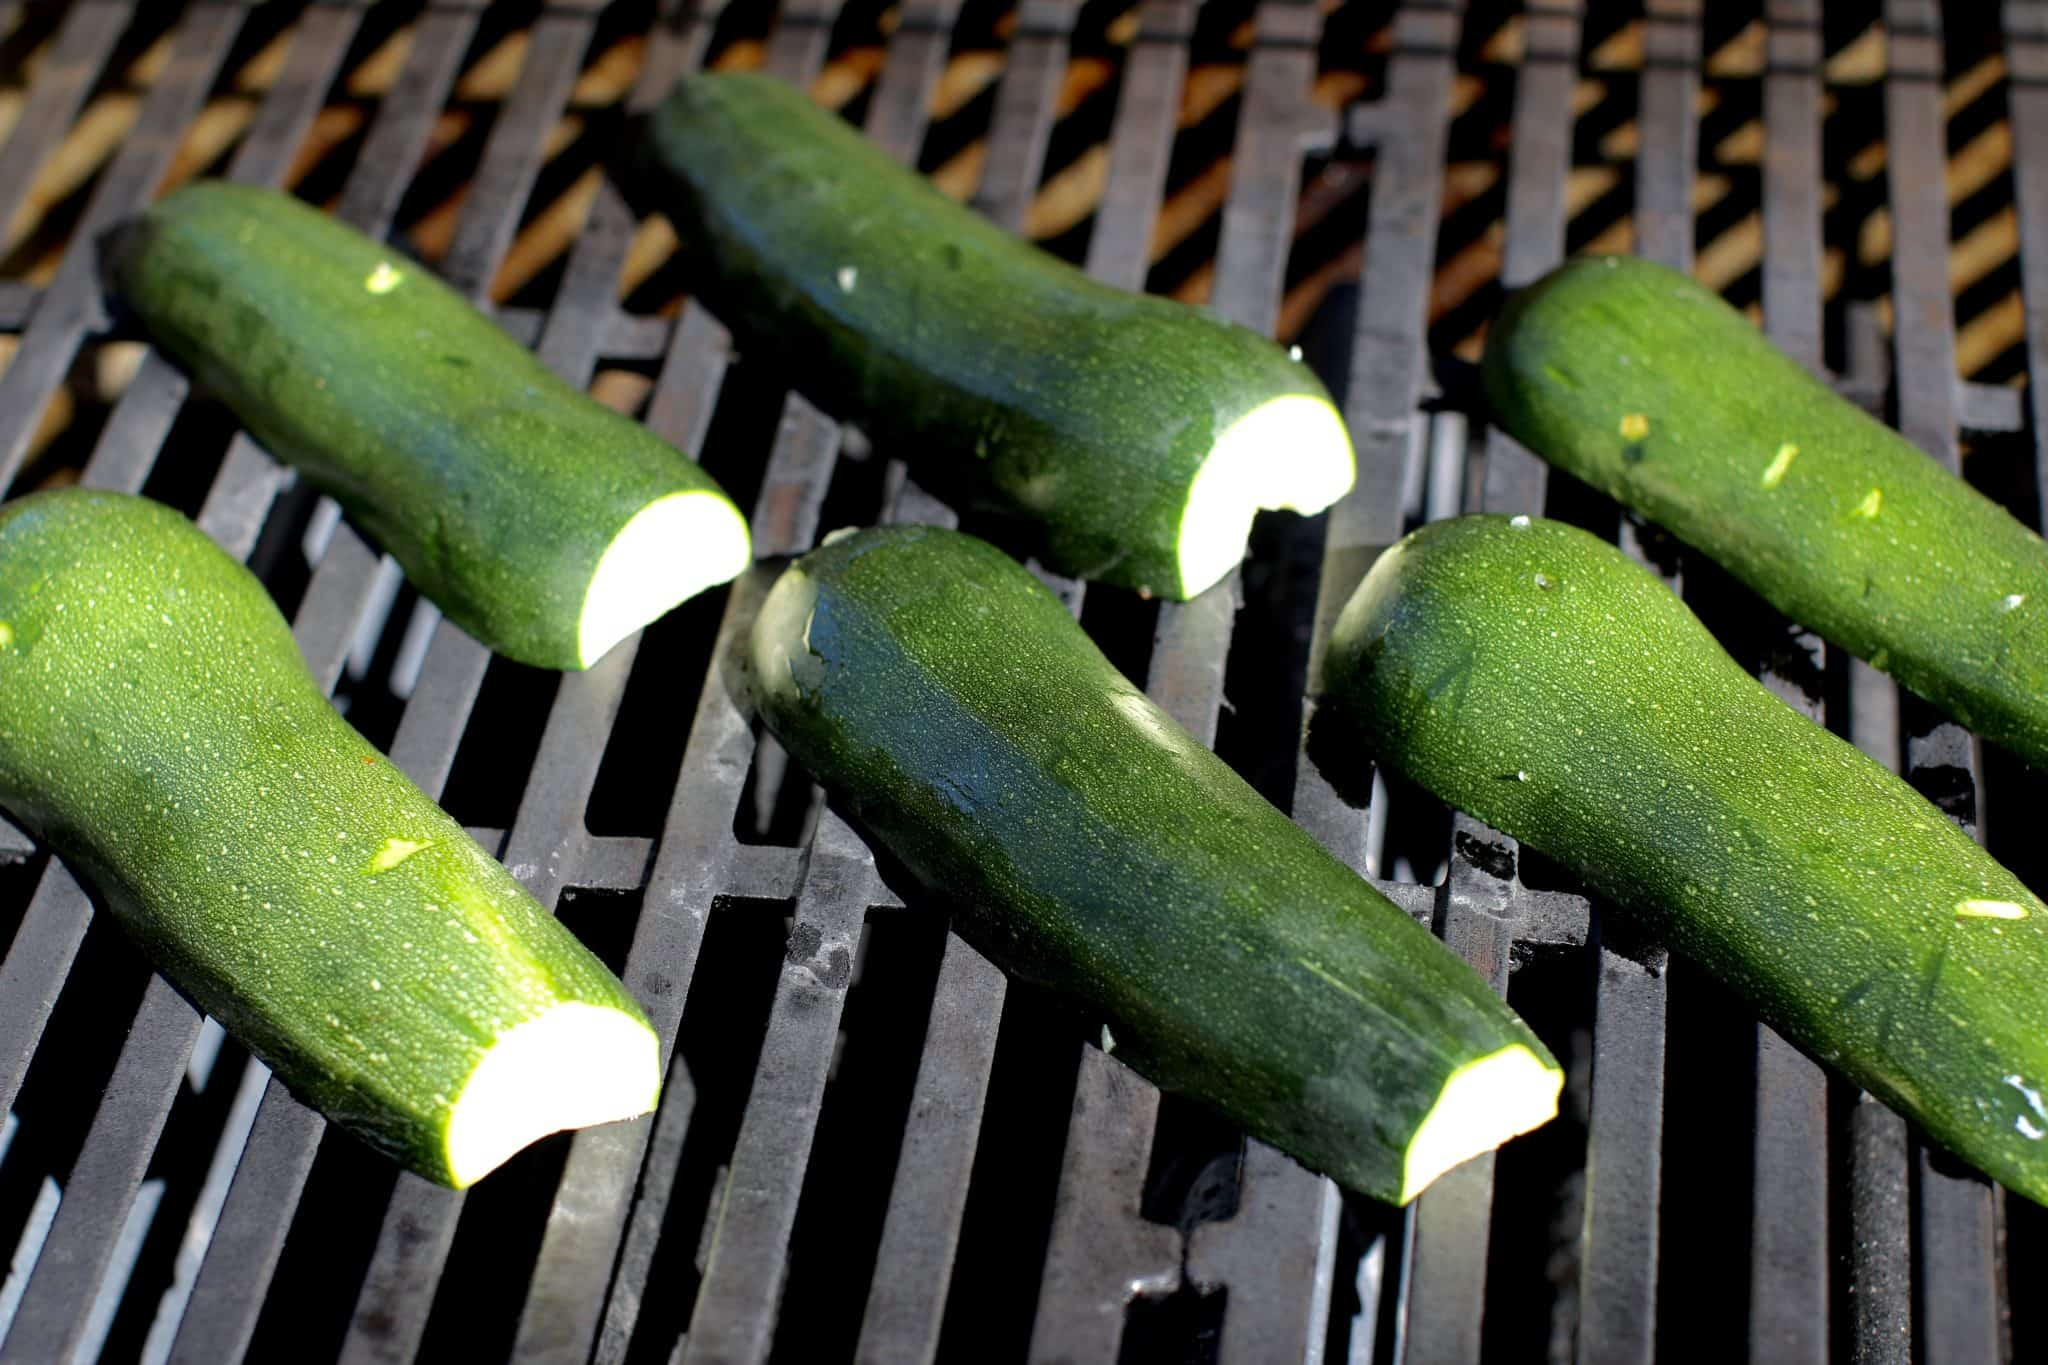 zucchini halves shown cut side don on the grates of a propane grill.